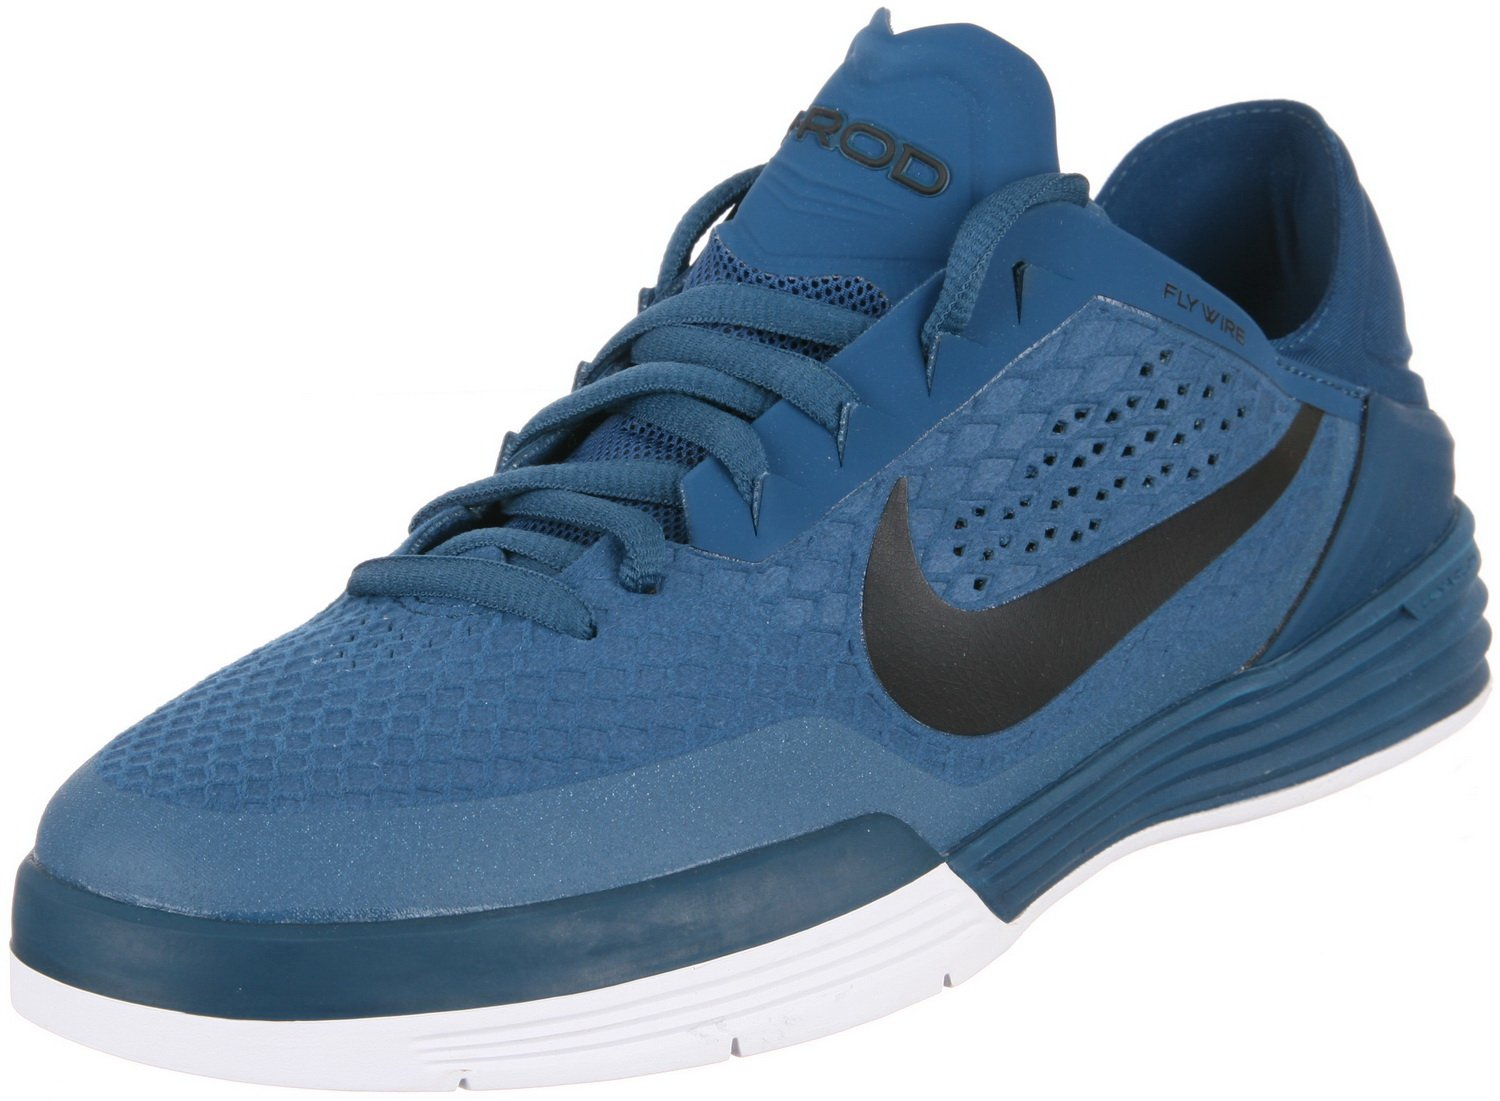 Nike Paul Rodriguez 8 Men Round Toe Synthetic Black Sneakers 11 D(M) US|Blue Force/Black-white